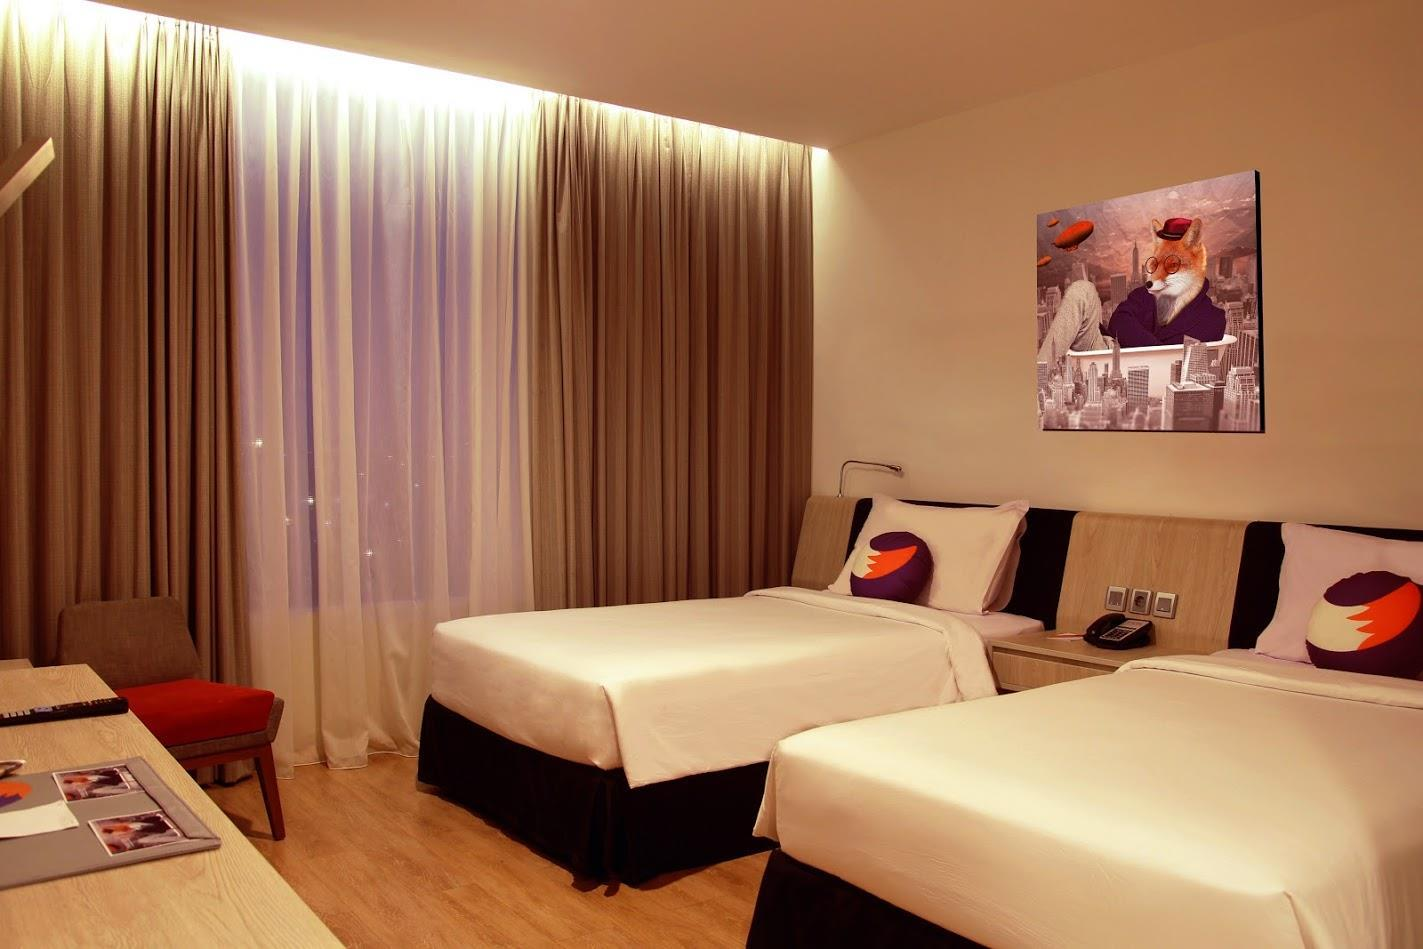 Fox Hotel Pekanbaru, Pekanbaru - Compare Deals